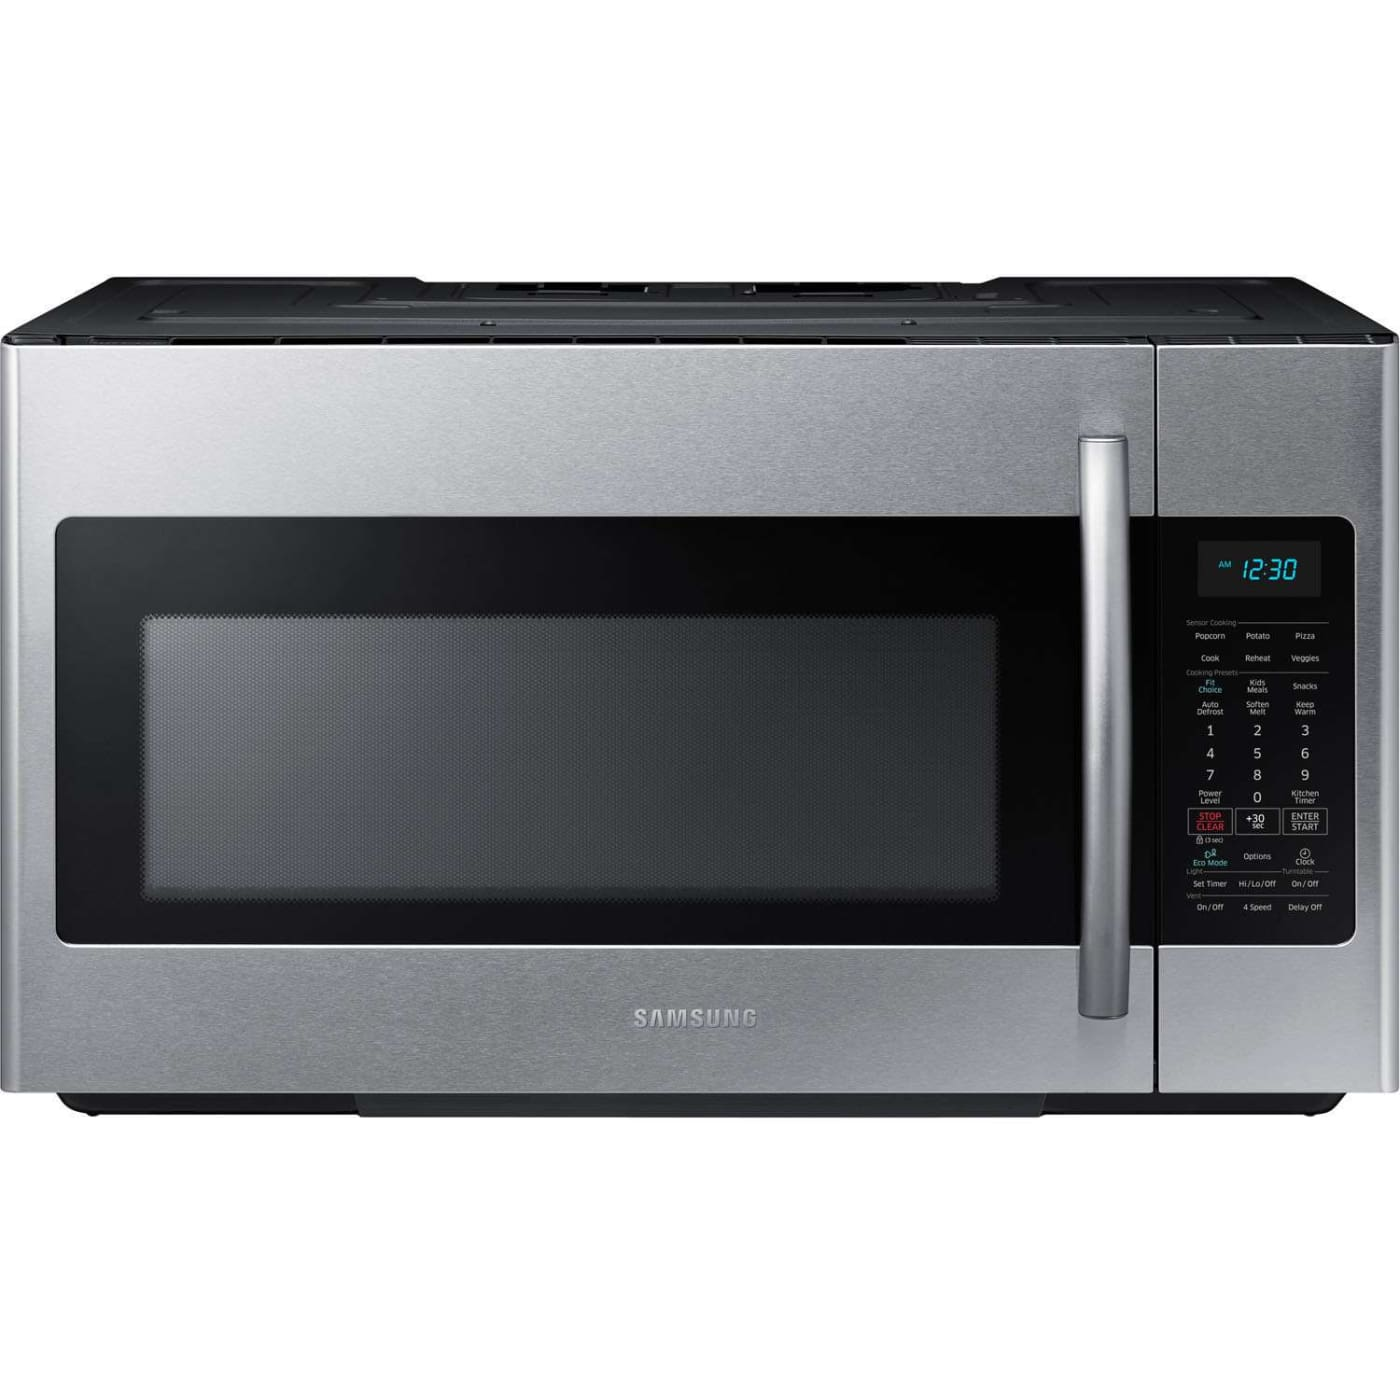 Ft Stainless Steel Over The Range Microwave Samsung Me18h704sfs